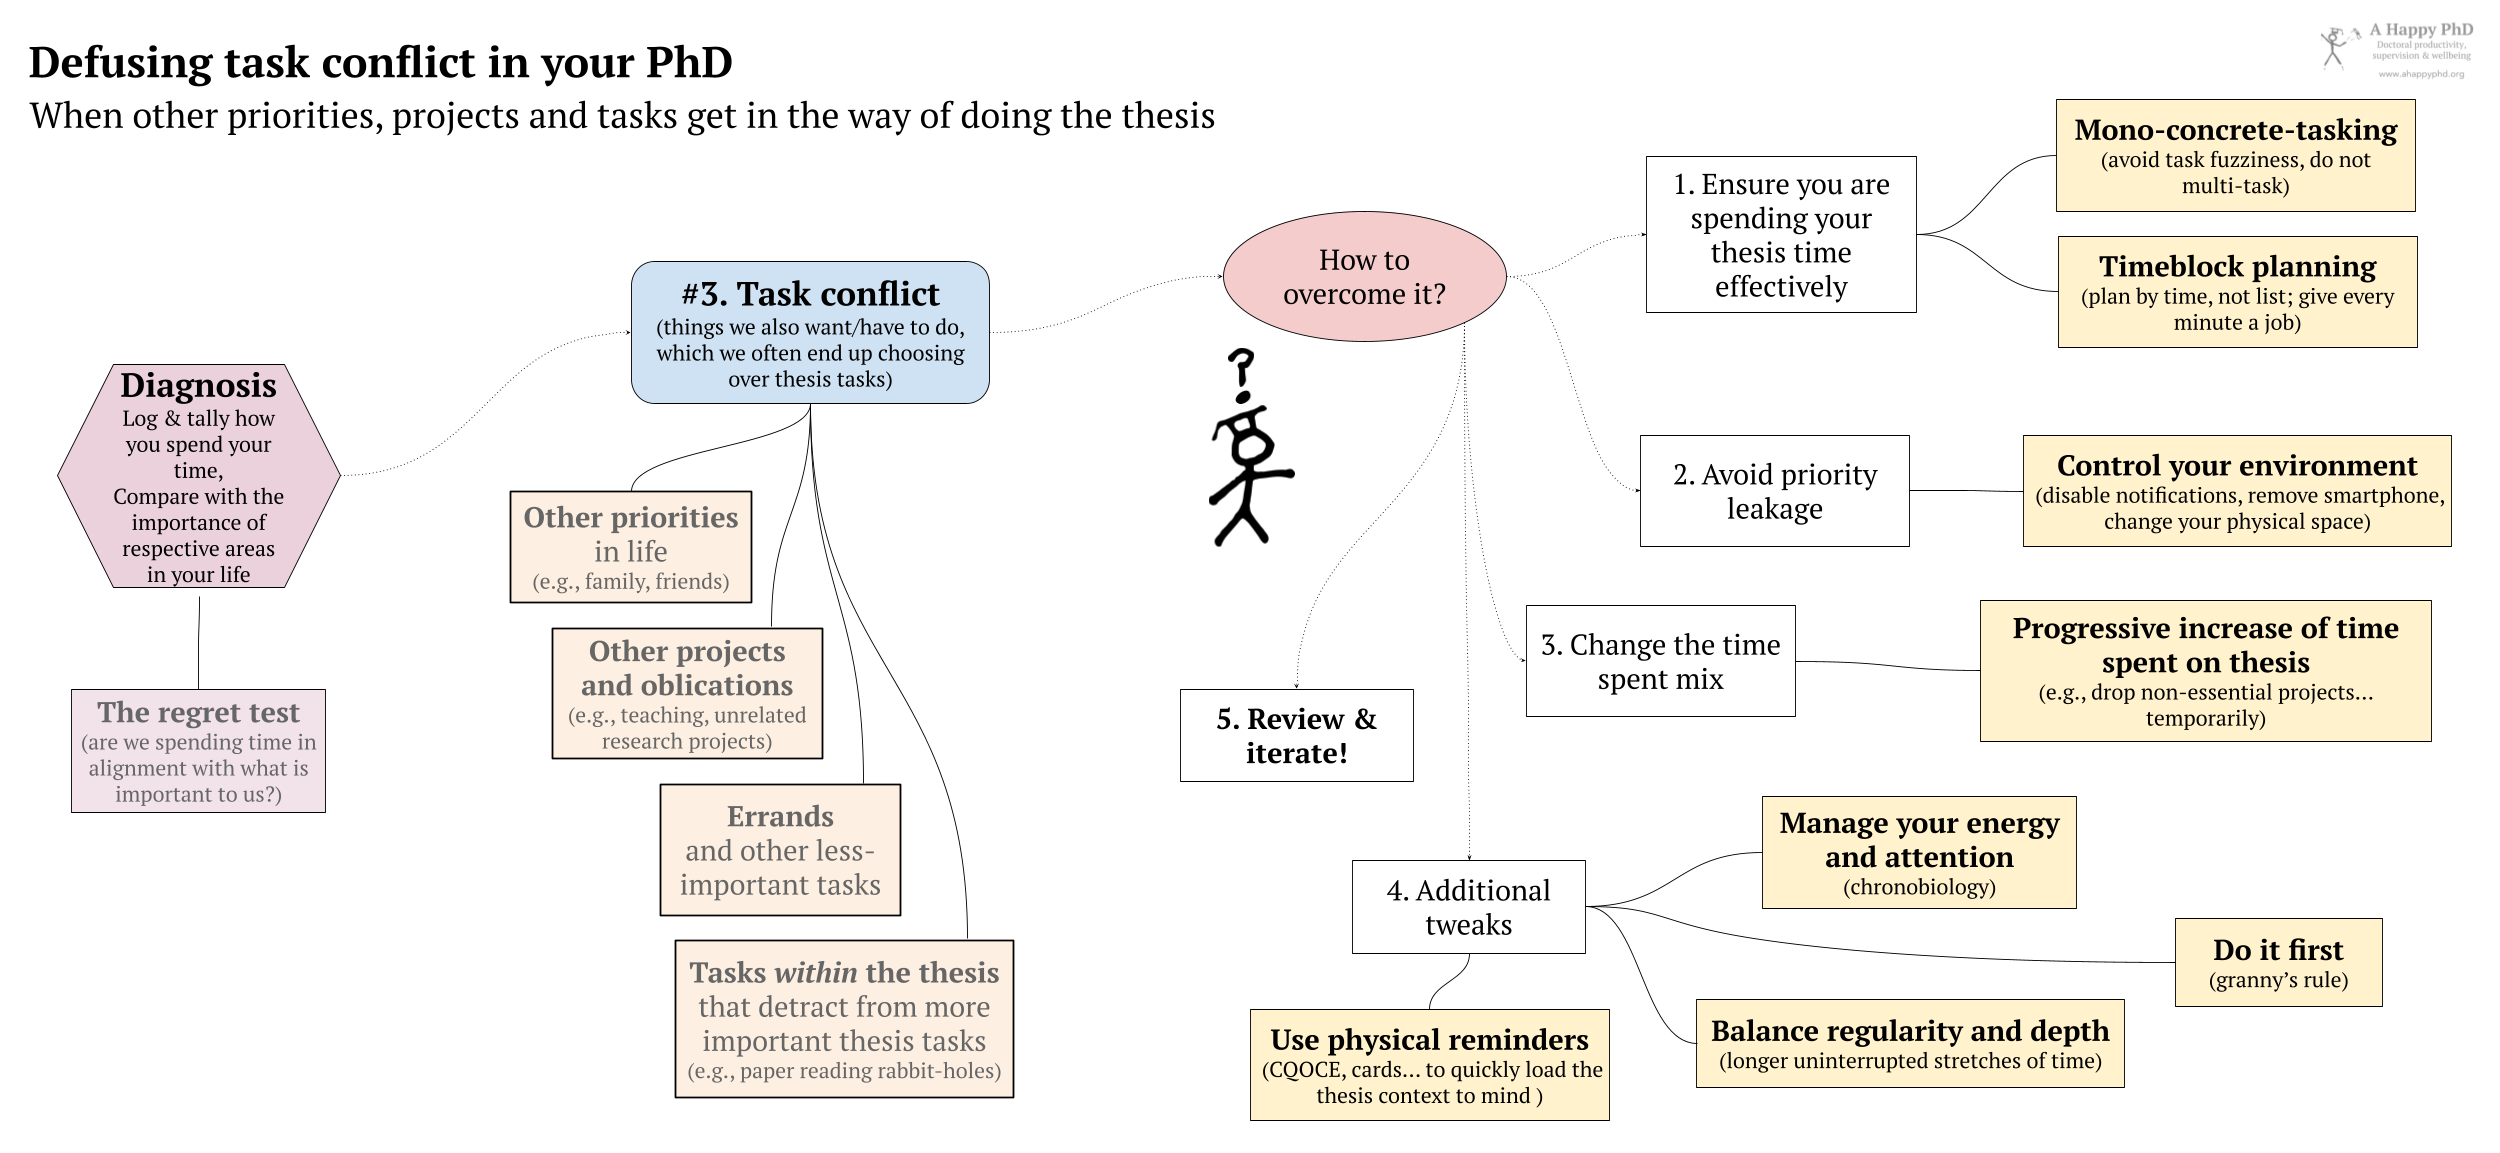 Strategies one can follow to overcome task conflict in the PhD